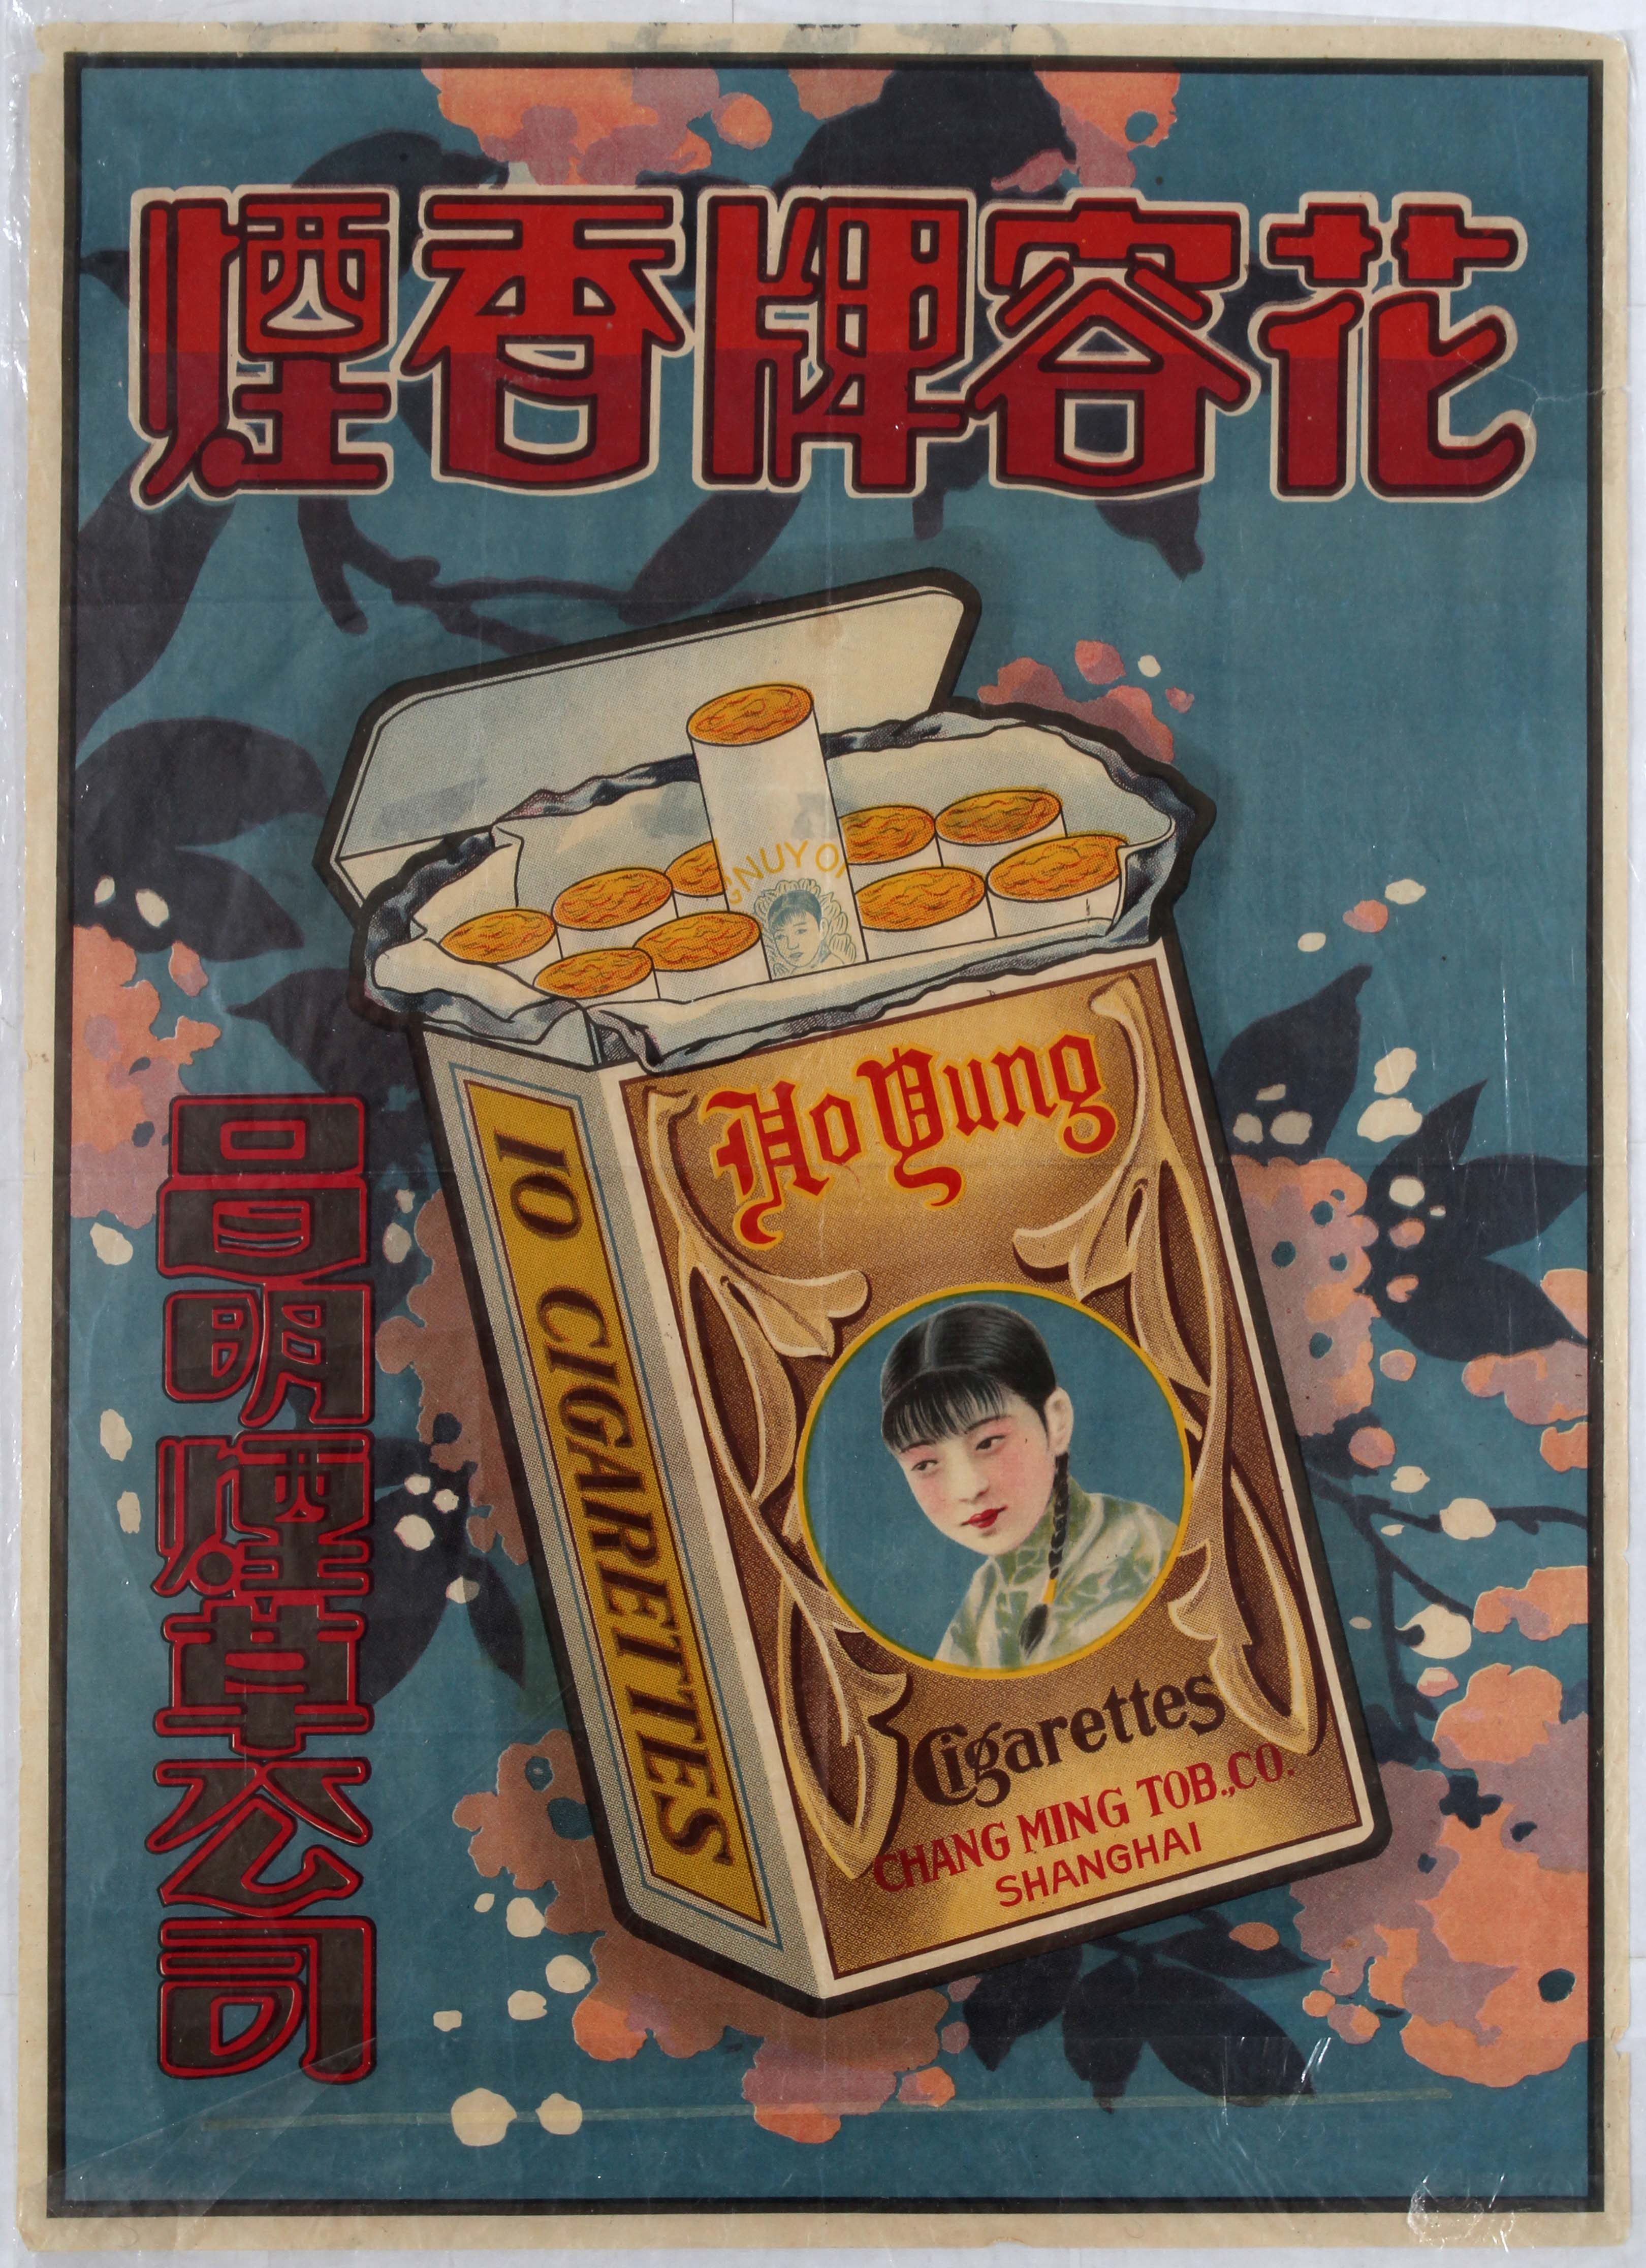 Lot 1202 - Advertising Poster for the Chinese brand of cigarettes Ho Yung.